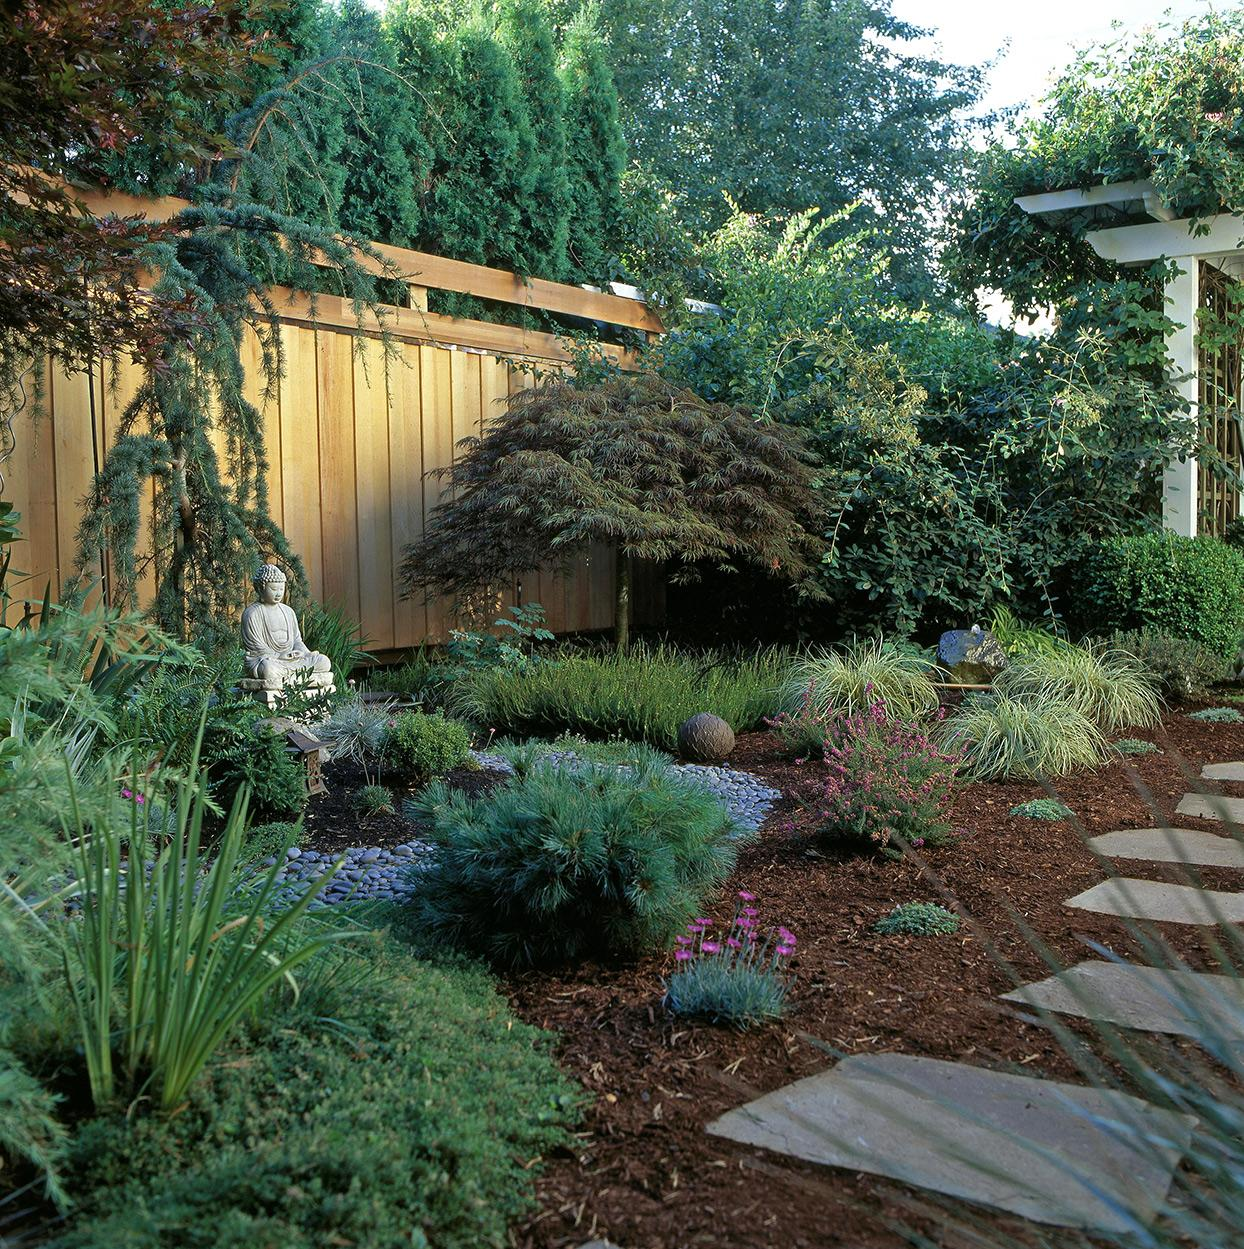 Landscaping Ideas For The Front Yard: Front Yard Landscaping Ideas To Boost Your Home's Curb Appeal